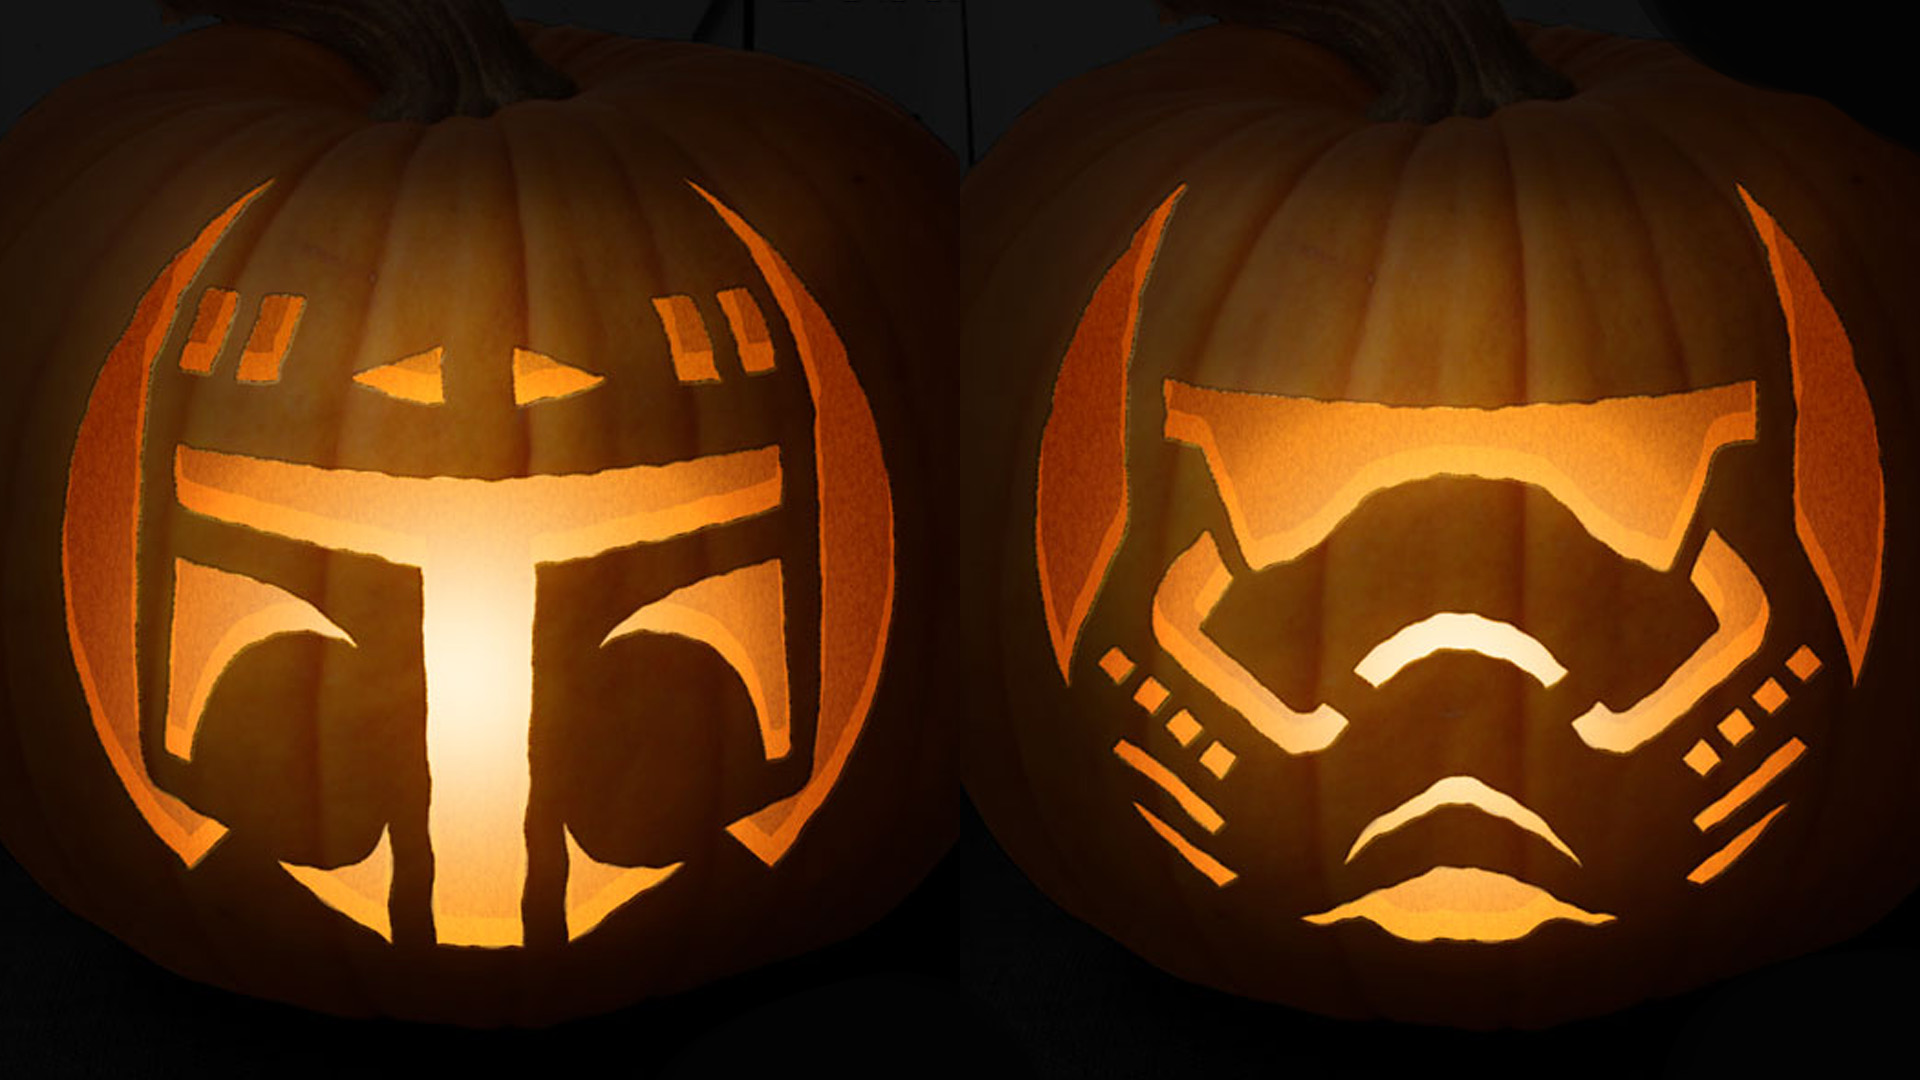 Star Wars Themed Pumpkin Carving Templates Will Give You The